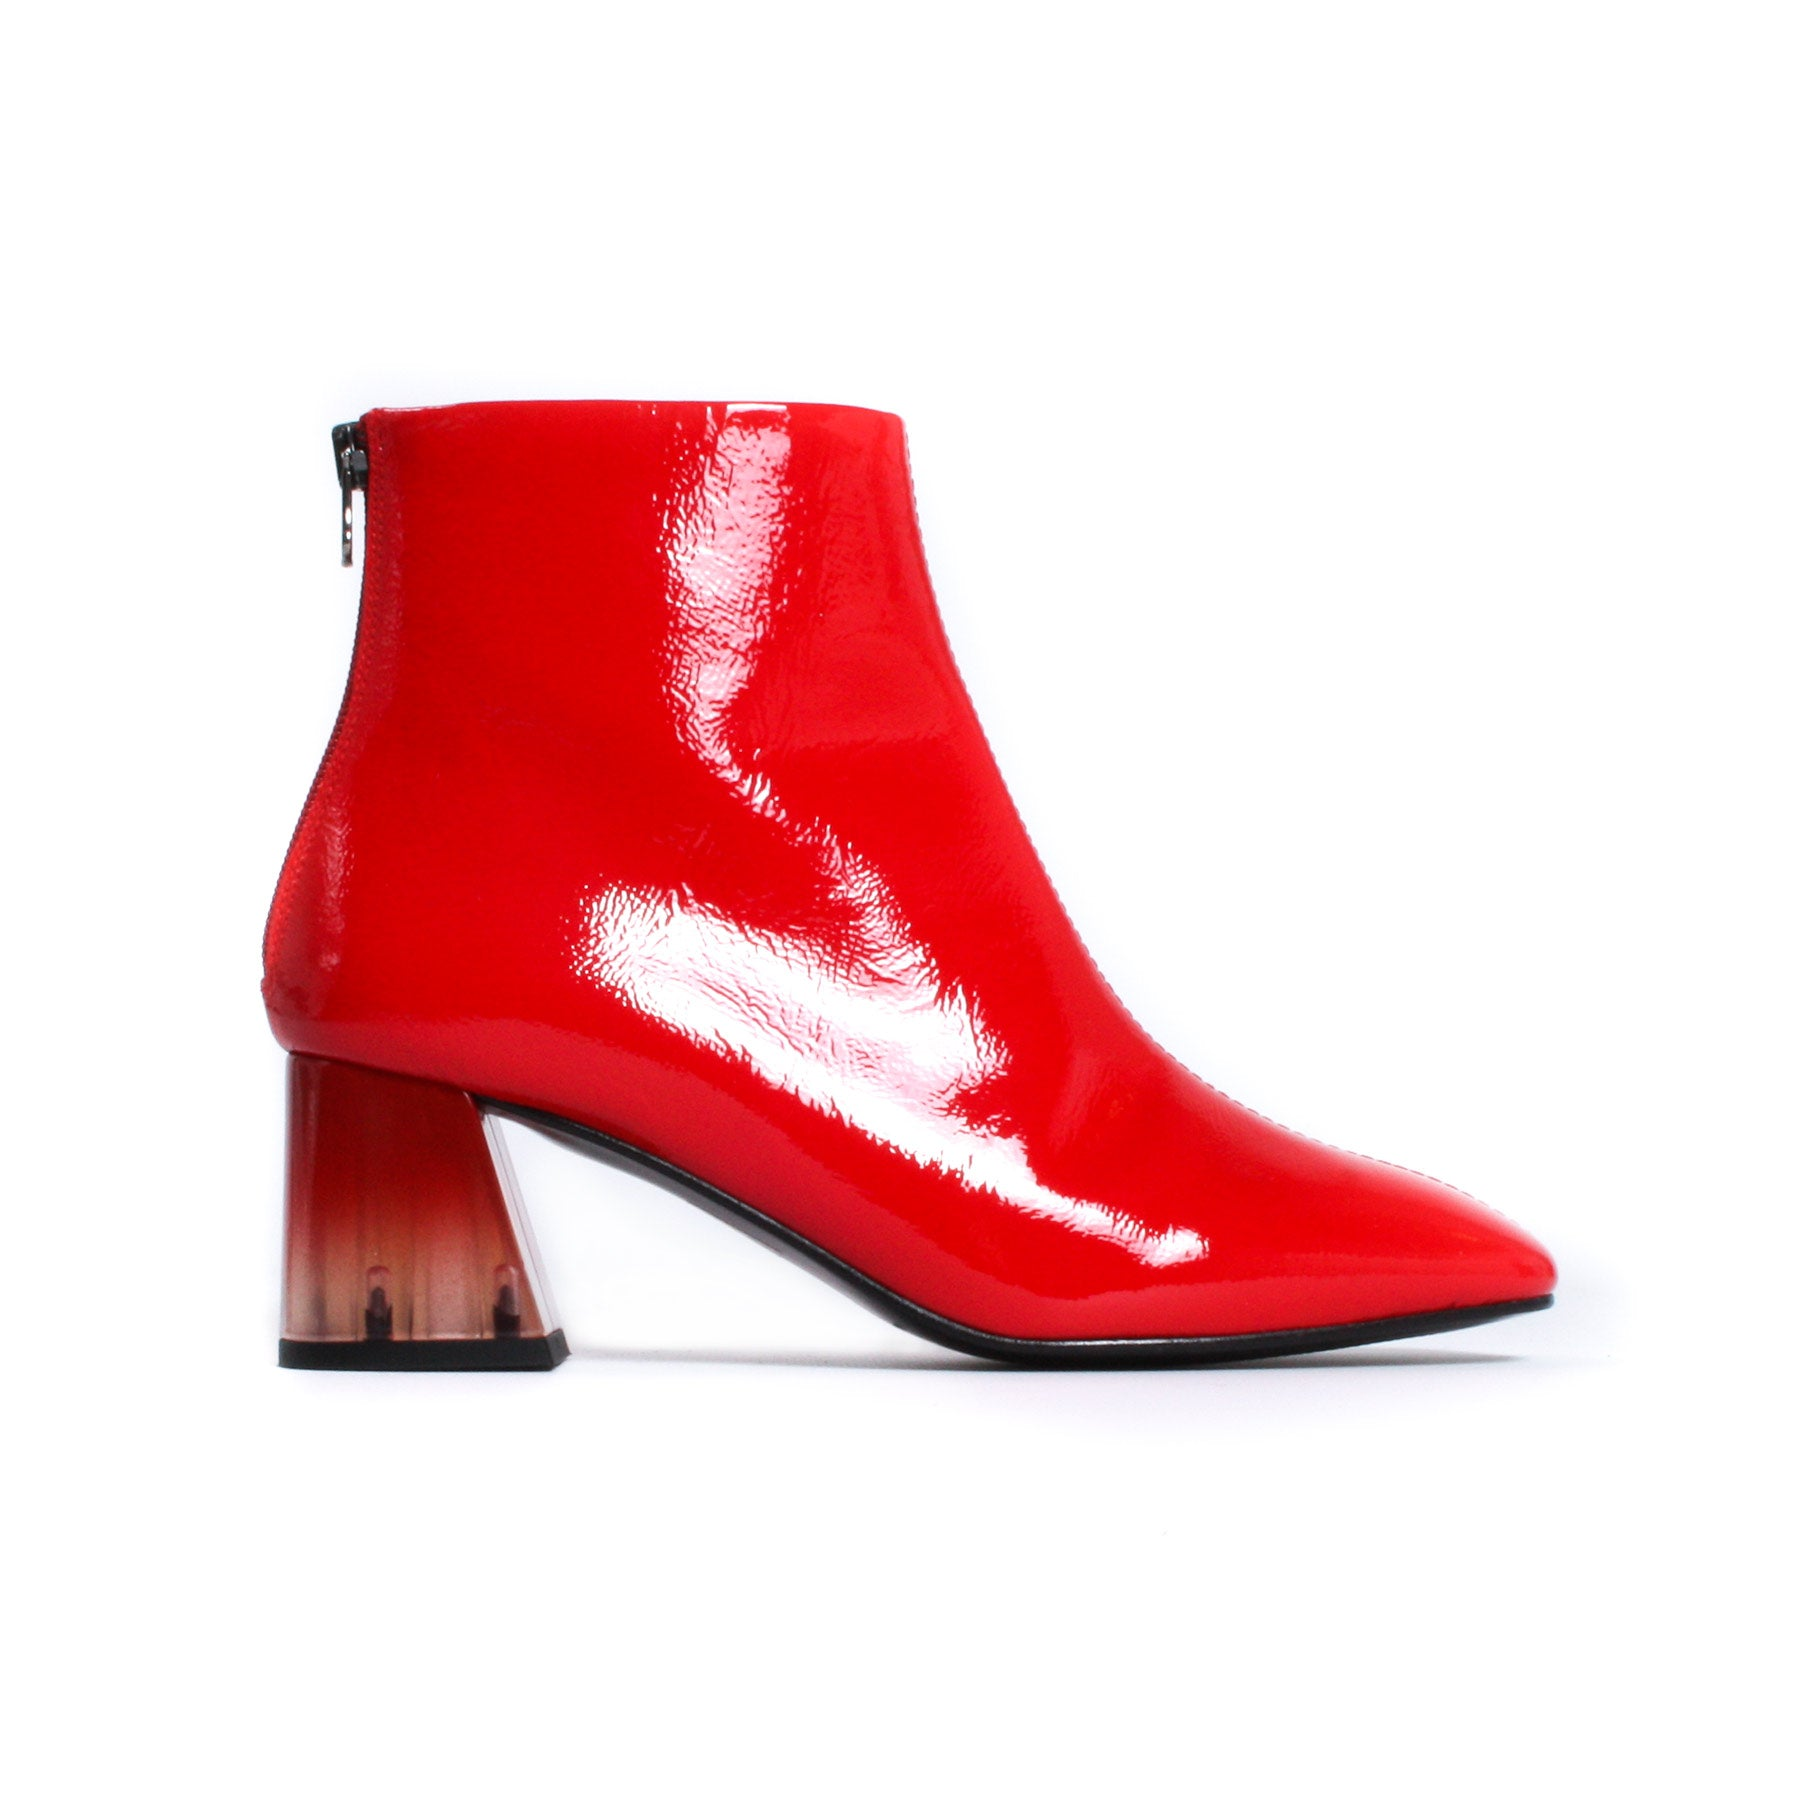 Soho Red Patent/Clear Heel